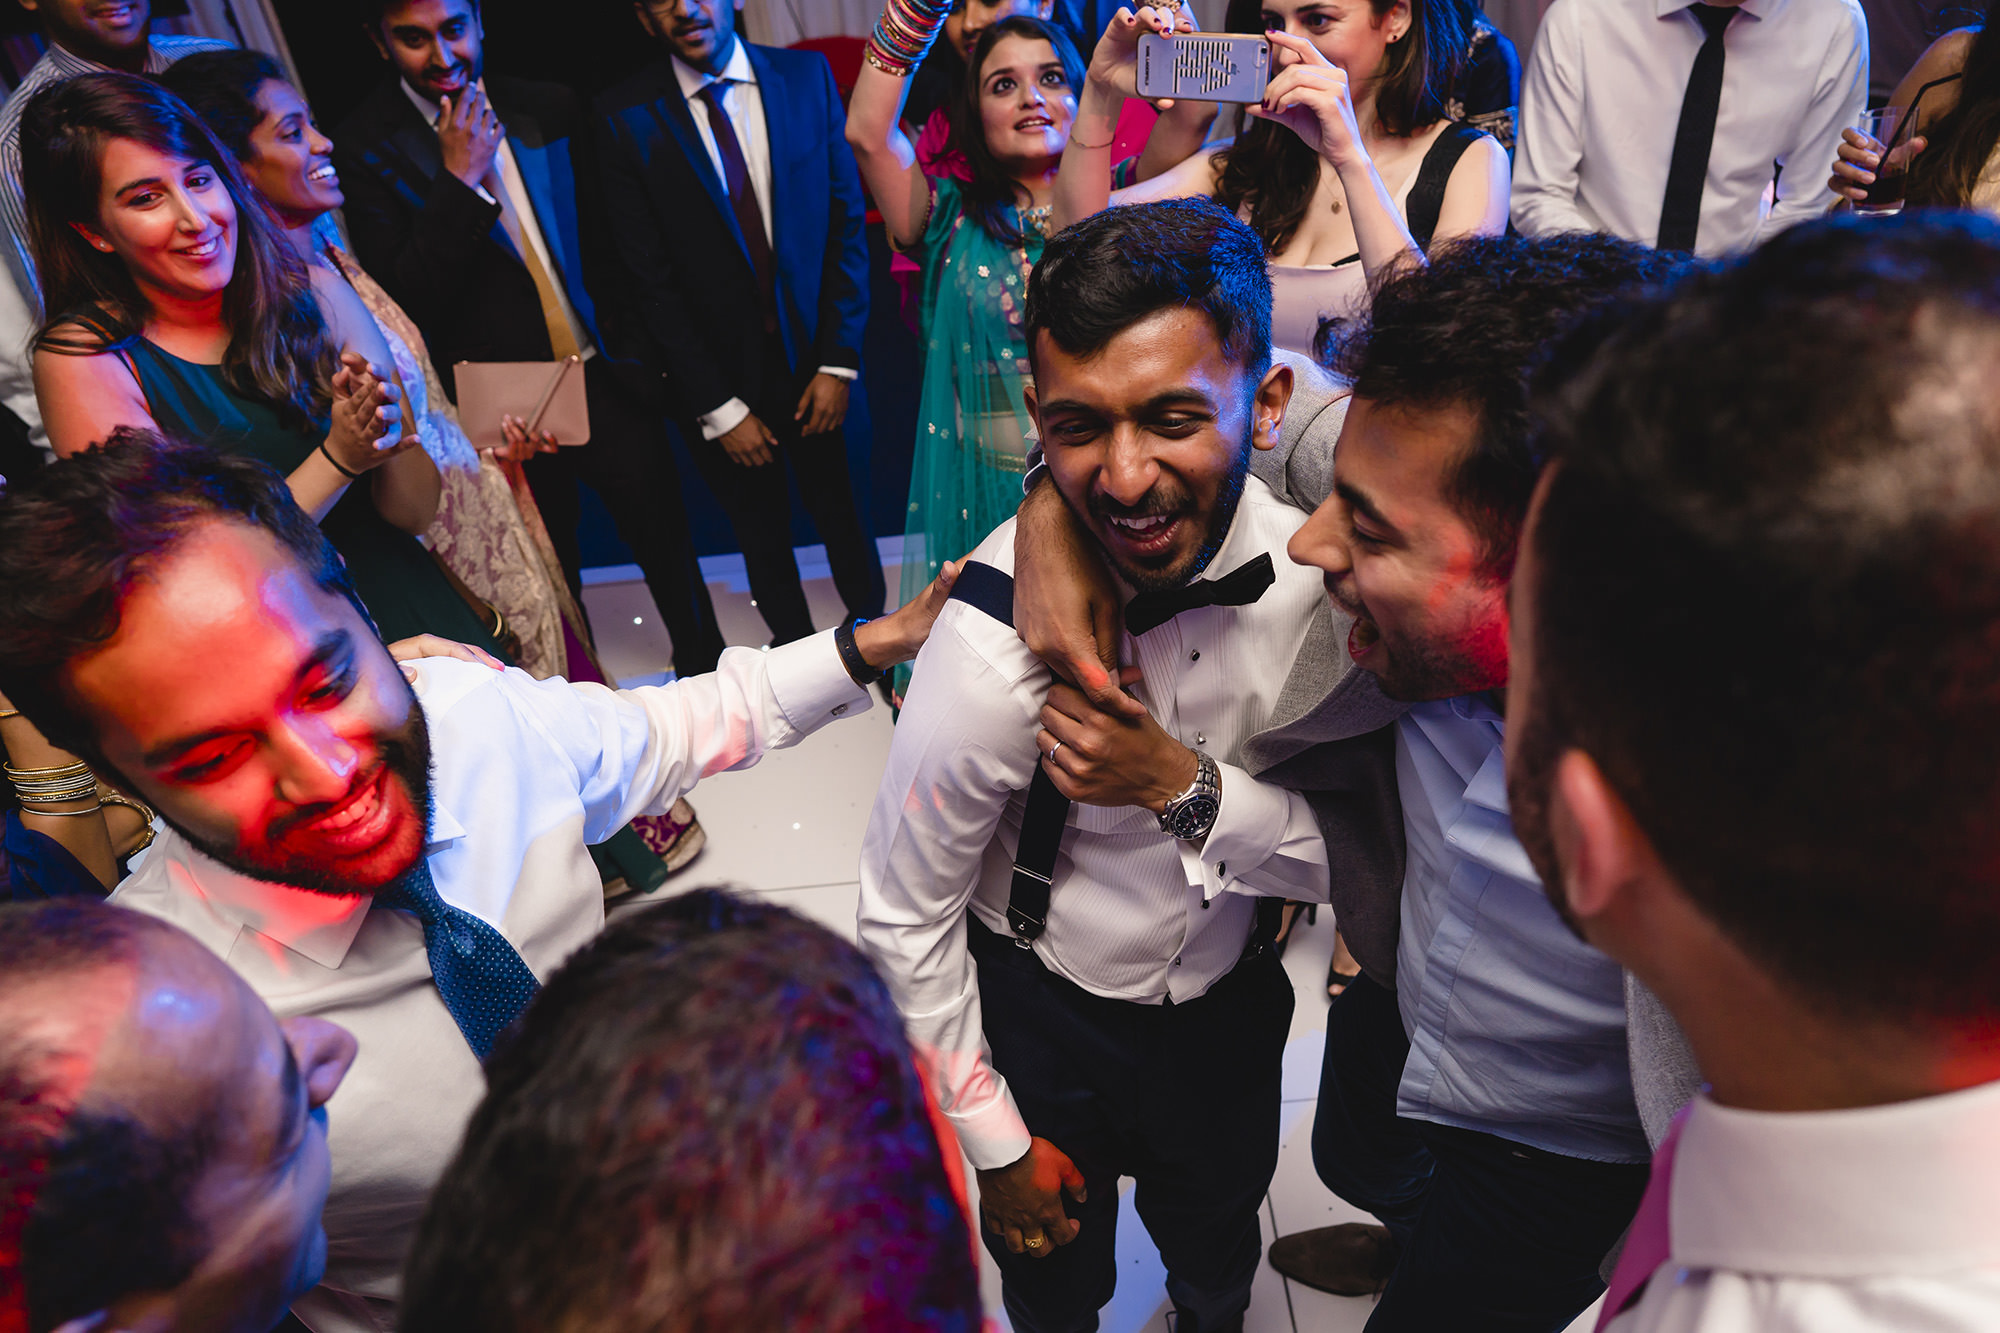 groom and his friends on the dancefloor